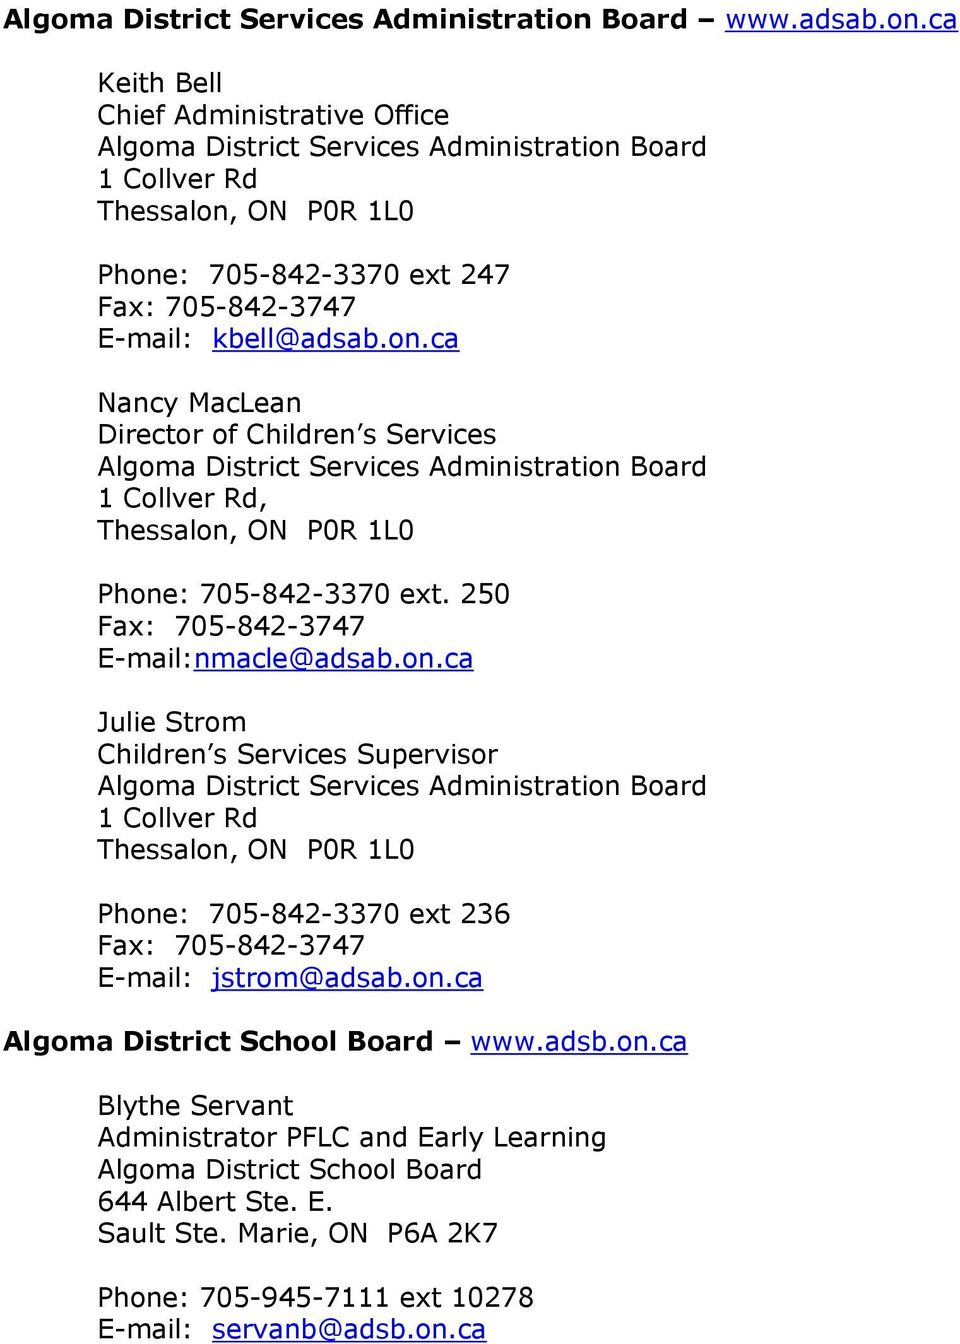 250 Fax: 705-842-3747 E-mail:nmacle@adsab.on.ca Julie Strom Children s Services Supervisor Board 1 Collver Rd Thessalon, ON P0R 1L0 Phone: 705-842-3370 ext 236 Fax: 705-842-3747 E-mail: jstrom@adsab.